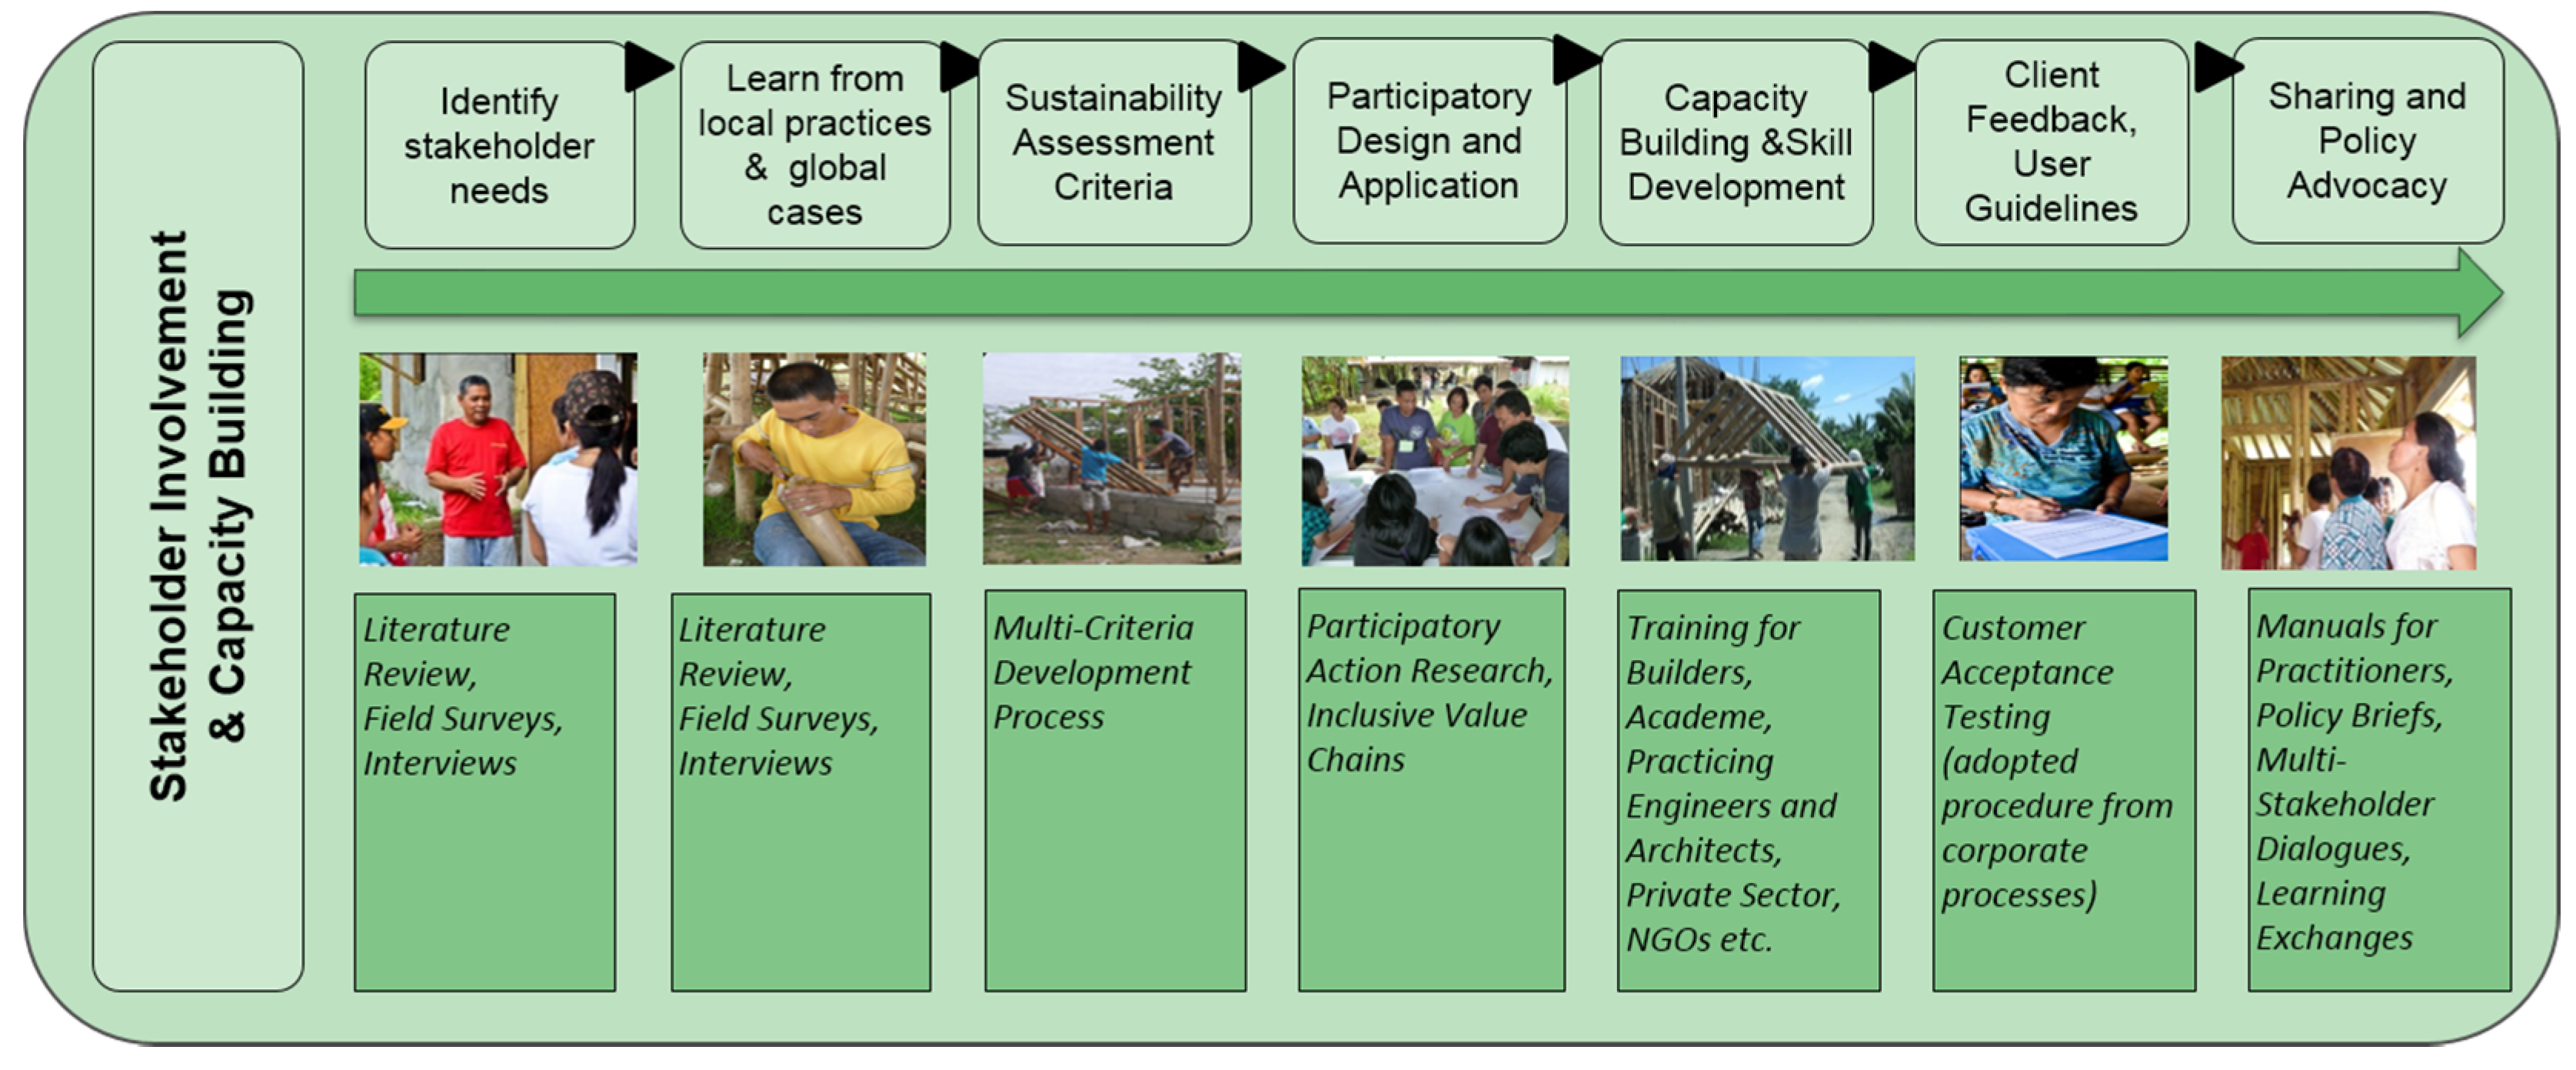 csr evolution of defitional construct This research article examines one such case study of corporate social responsibility exemplified by responsibility: evolution of a definitional construct.